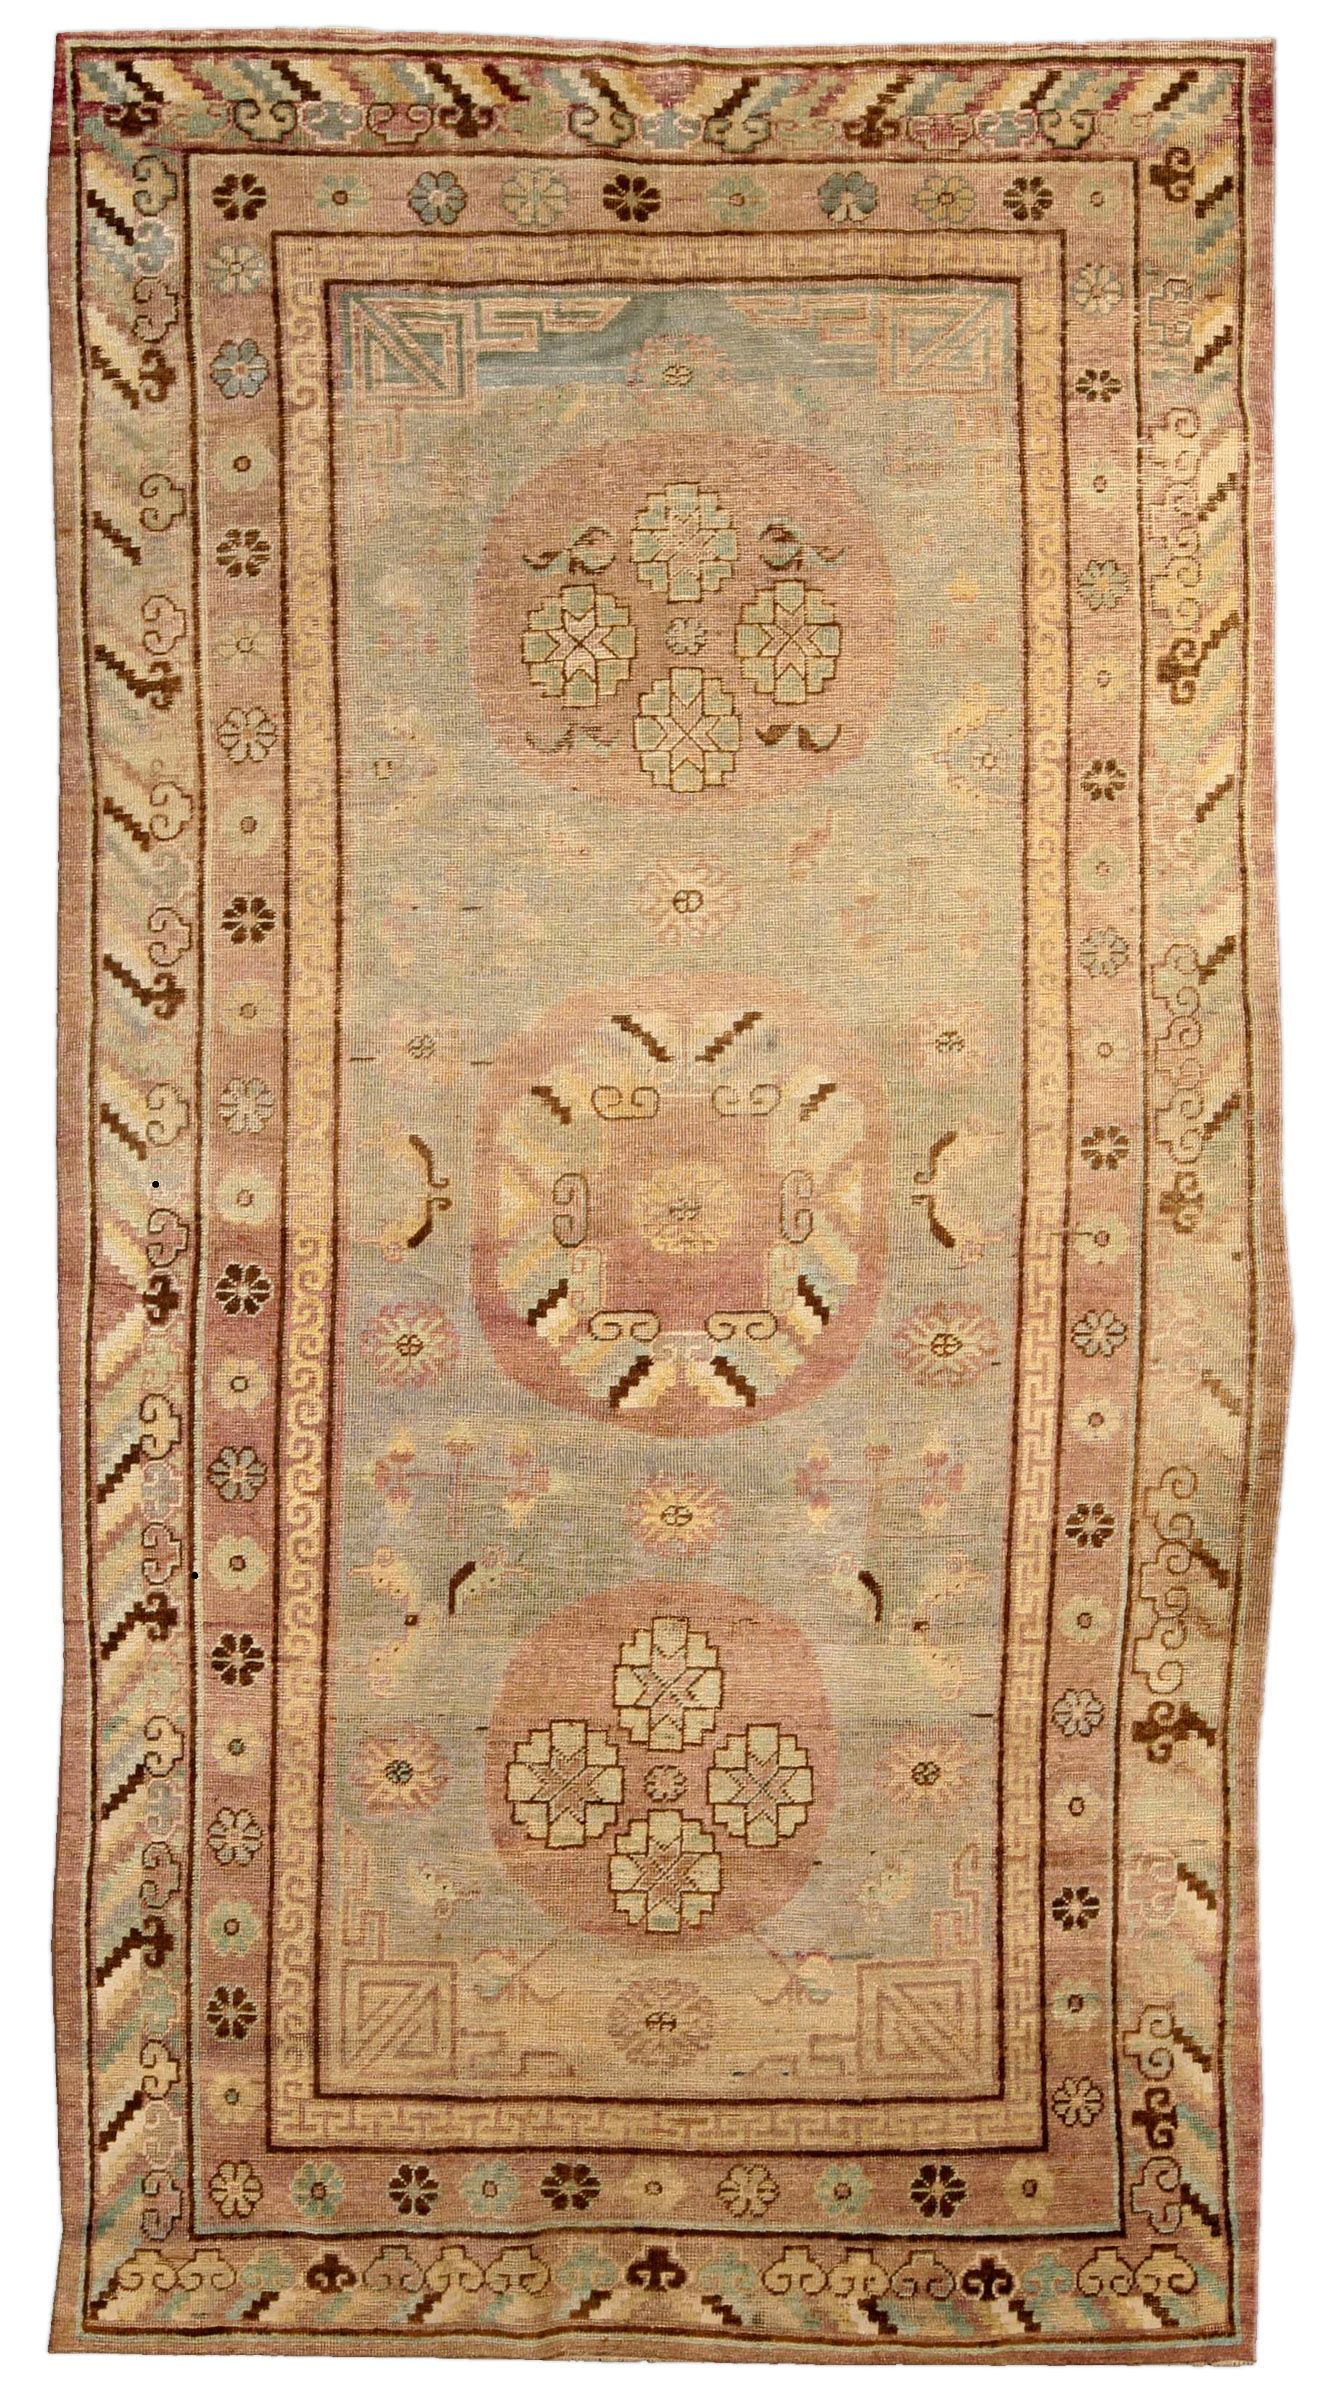 A Samarkand rug BB4111 - An early 20th century Samarkand (Khotan) rug, the celadon field with scattered floral motifs and key-pattern ...